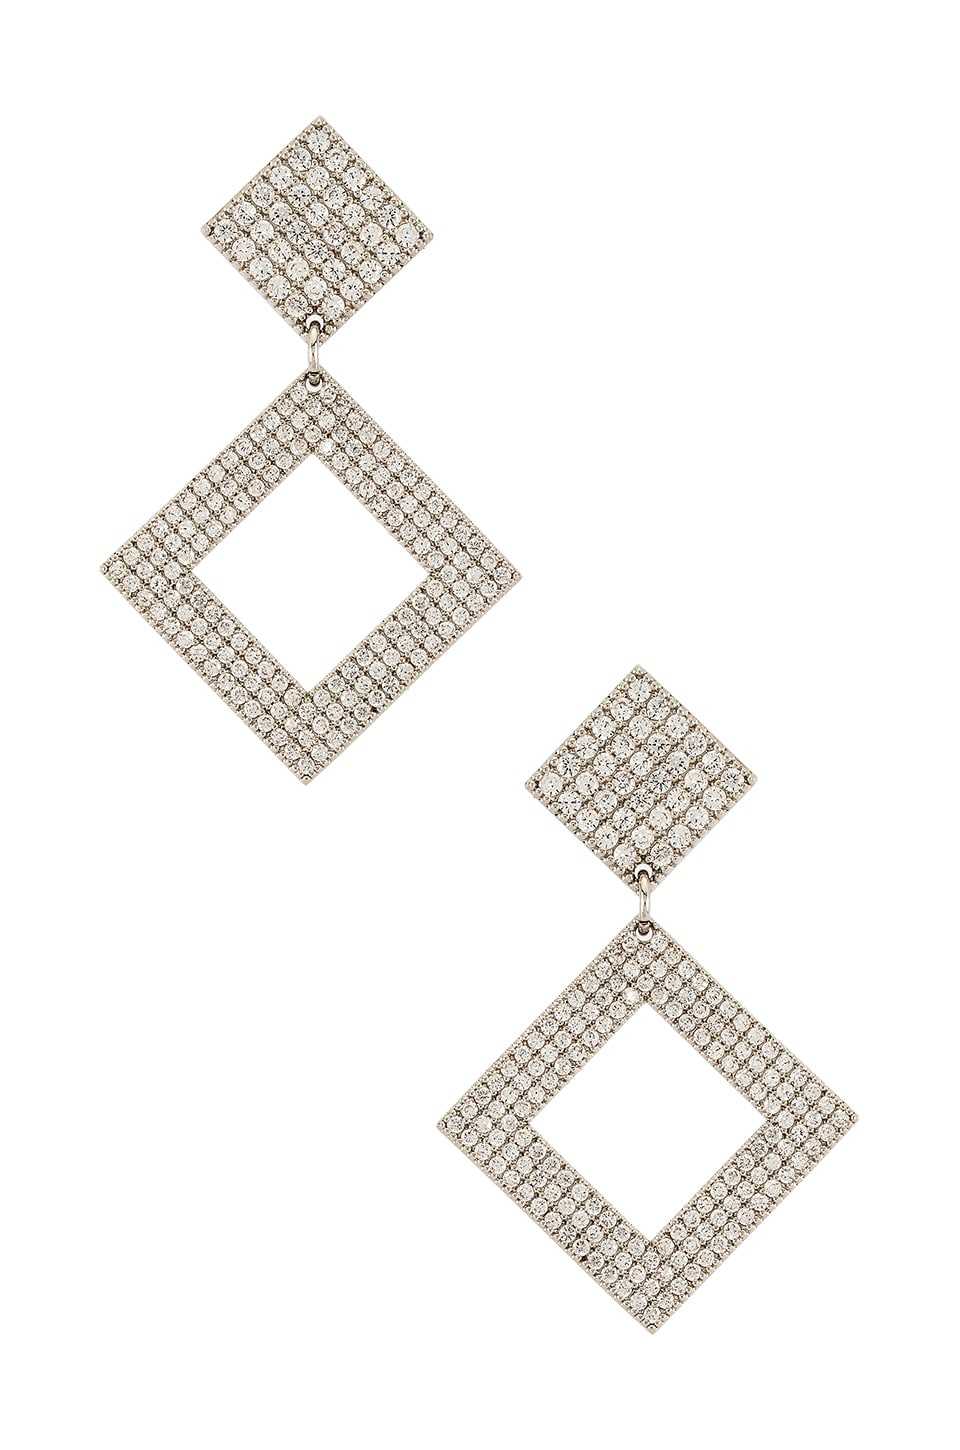 Luv AJ The Pave Princess Earrings in Silver